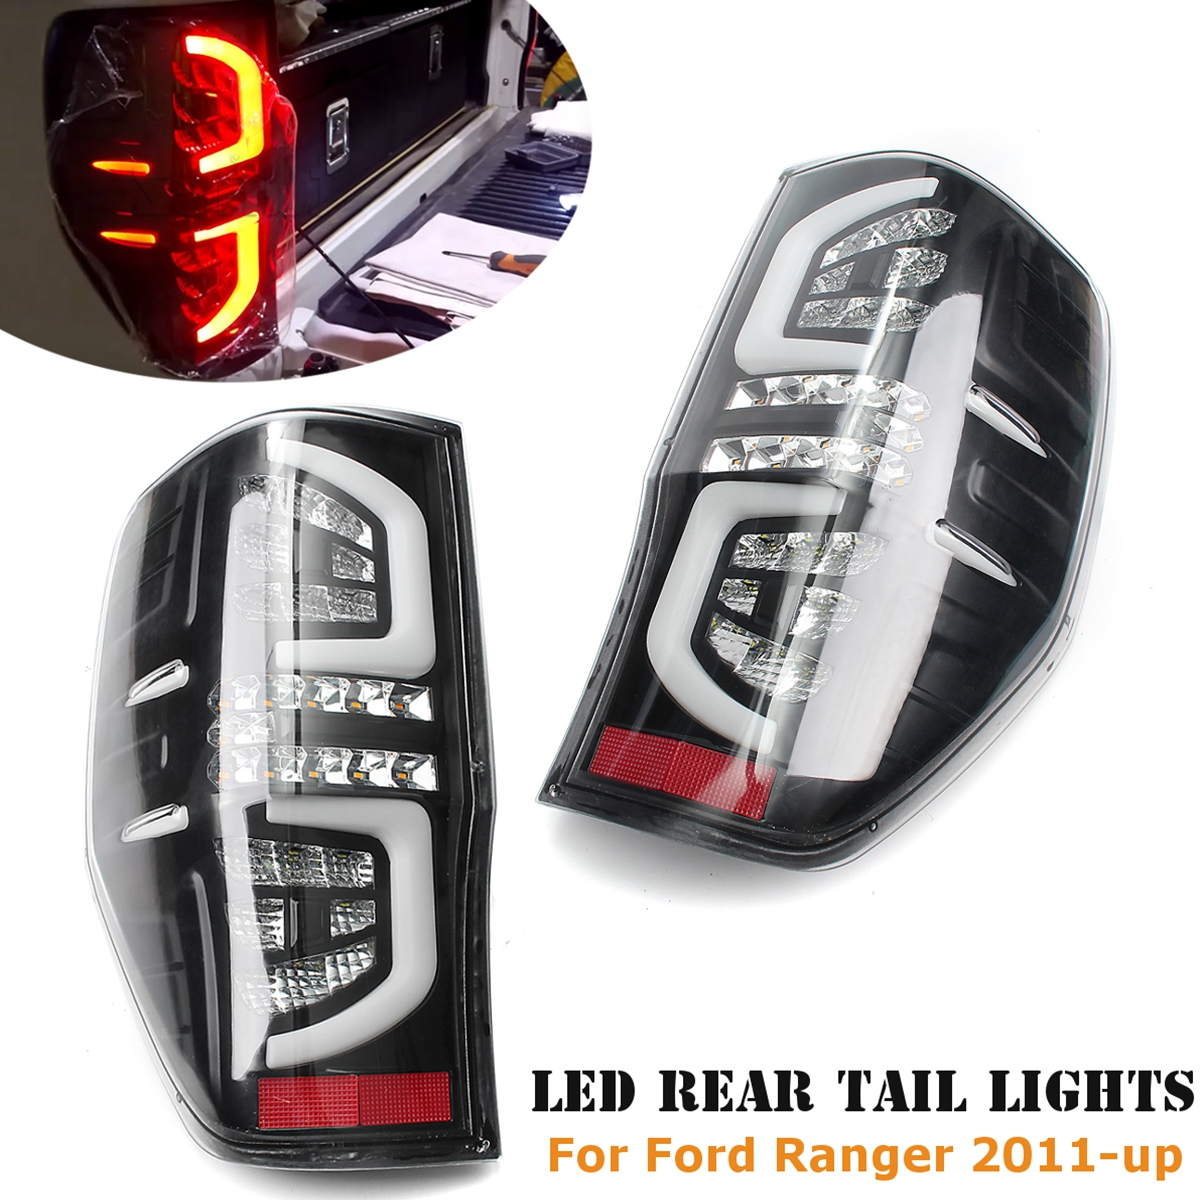 1 Pair for font b Ford b font Ranger LED Tail Rear Lamp Light Clear Read